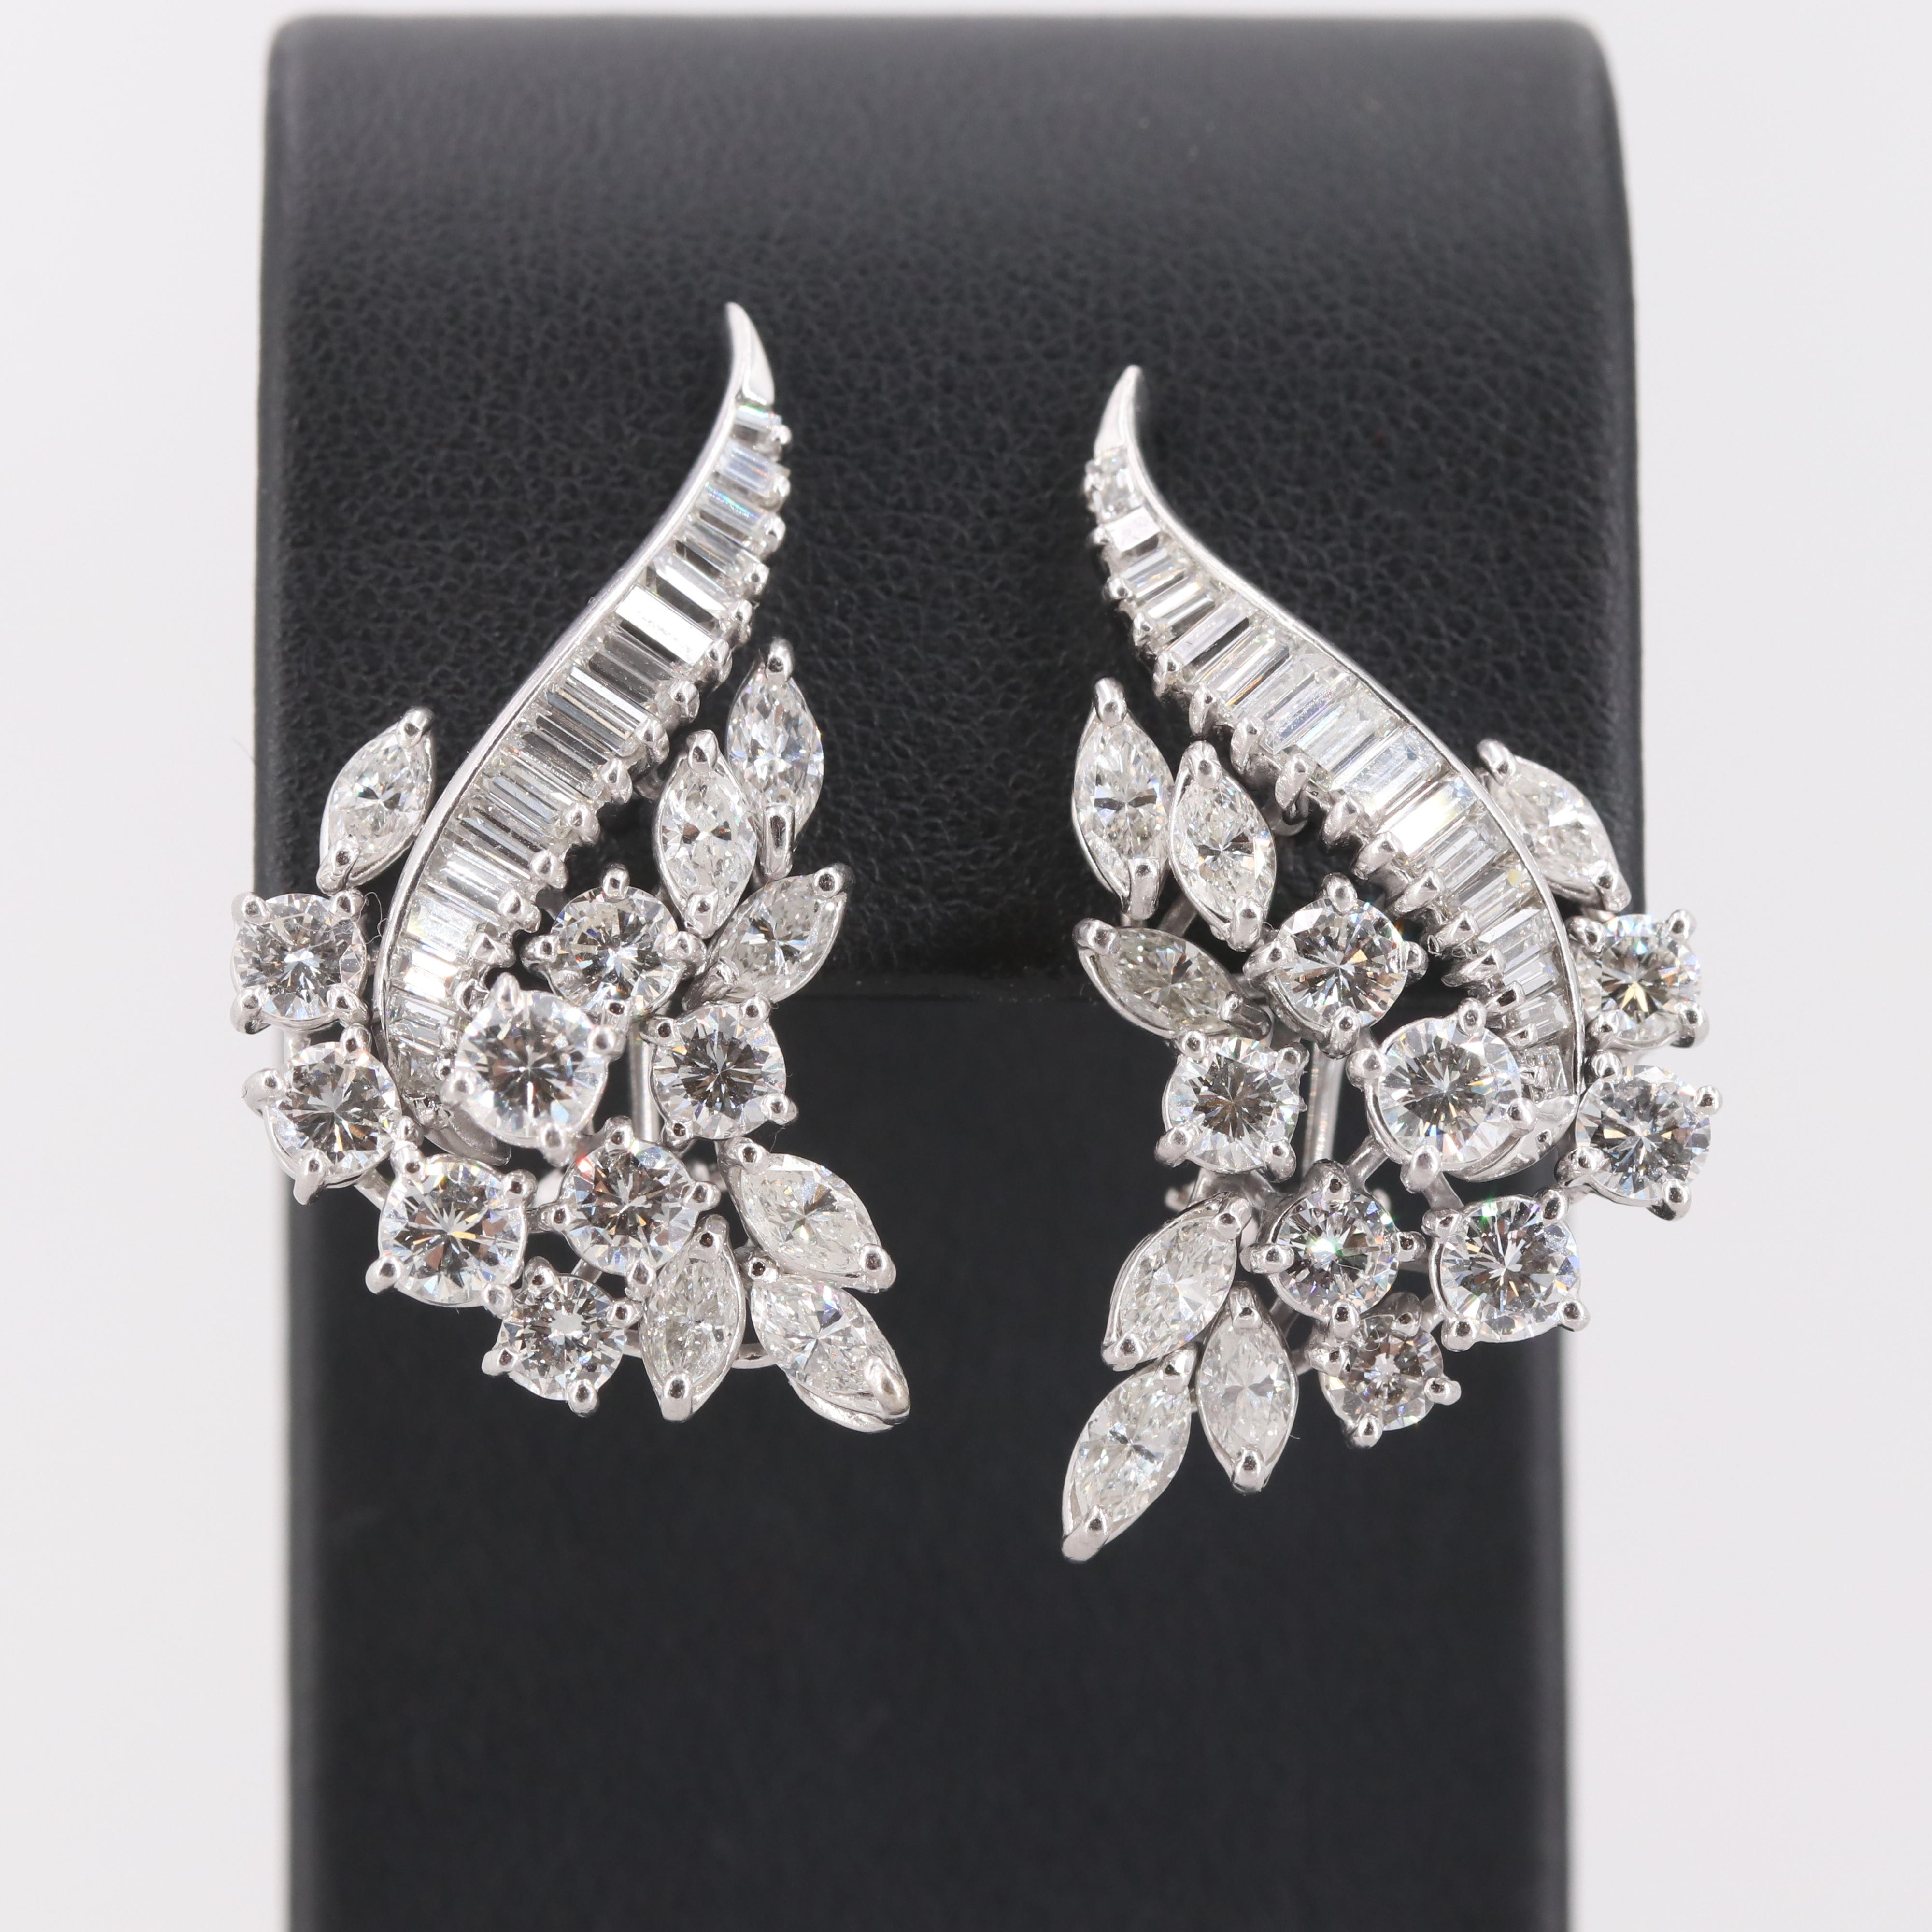 Platinum 7.03 CTW Diamond Earrings with 14K White Gold Closures